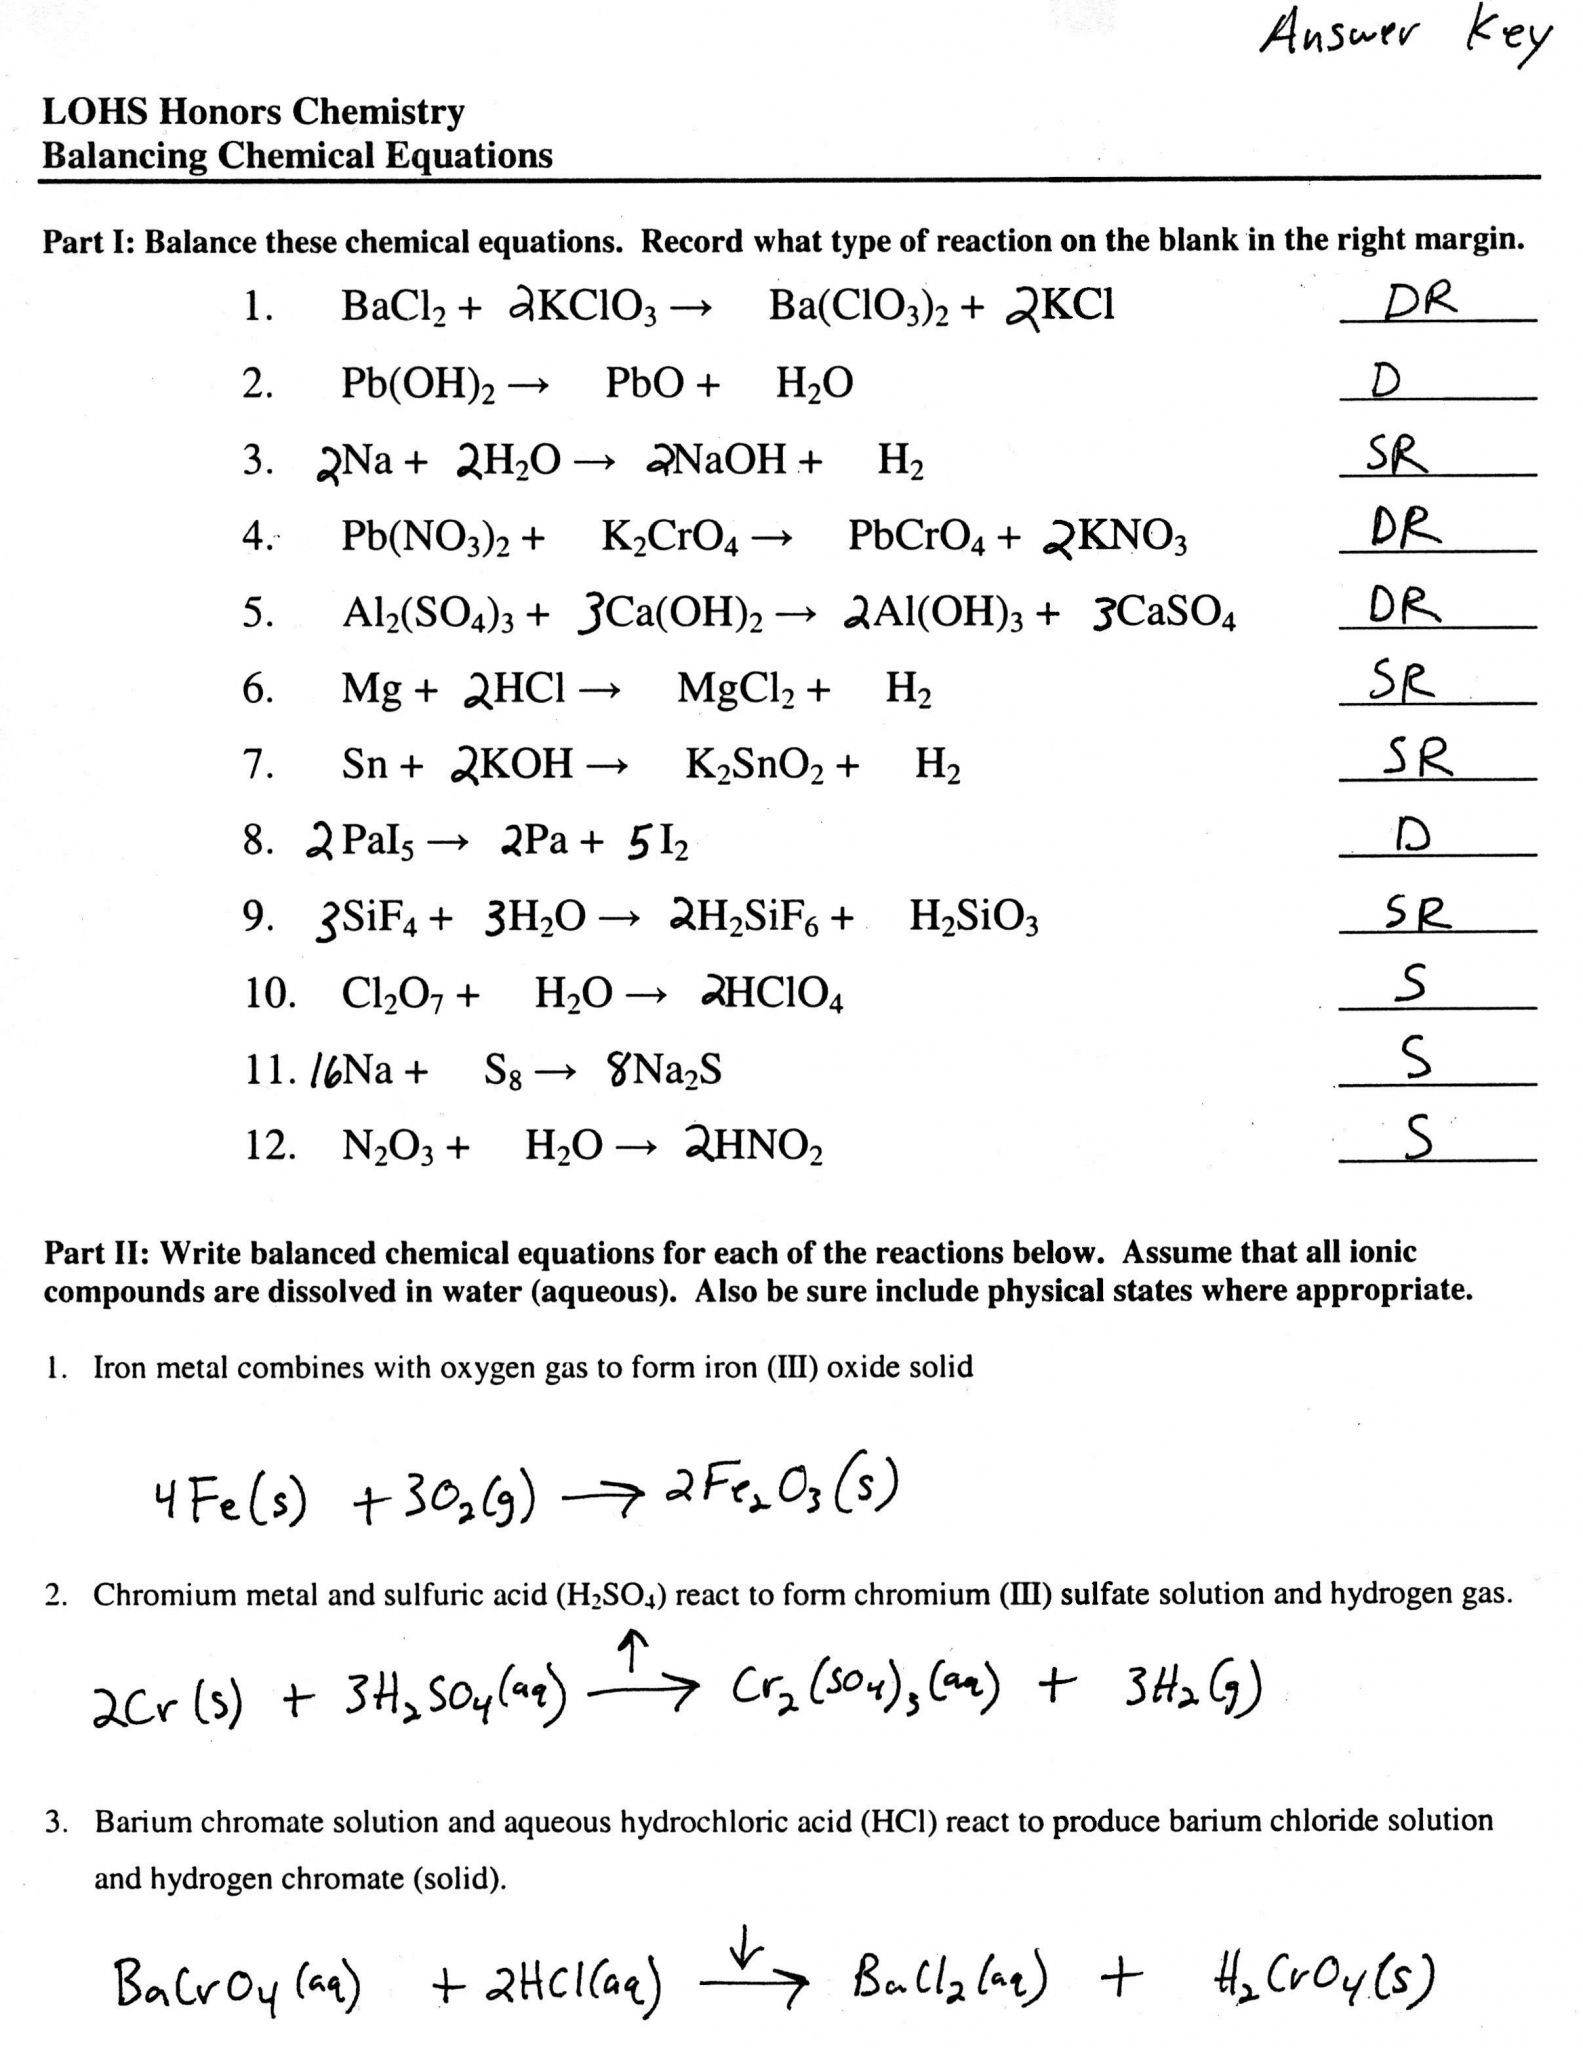 33 Clever Balancing Chemical Equations Worksheet Design